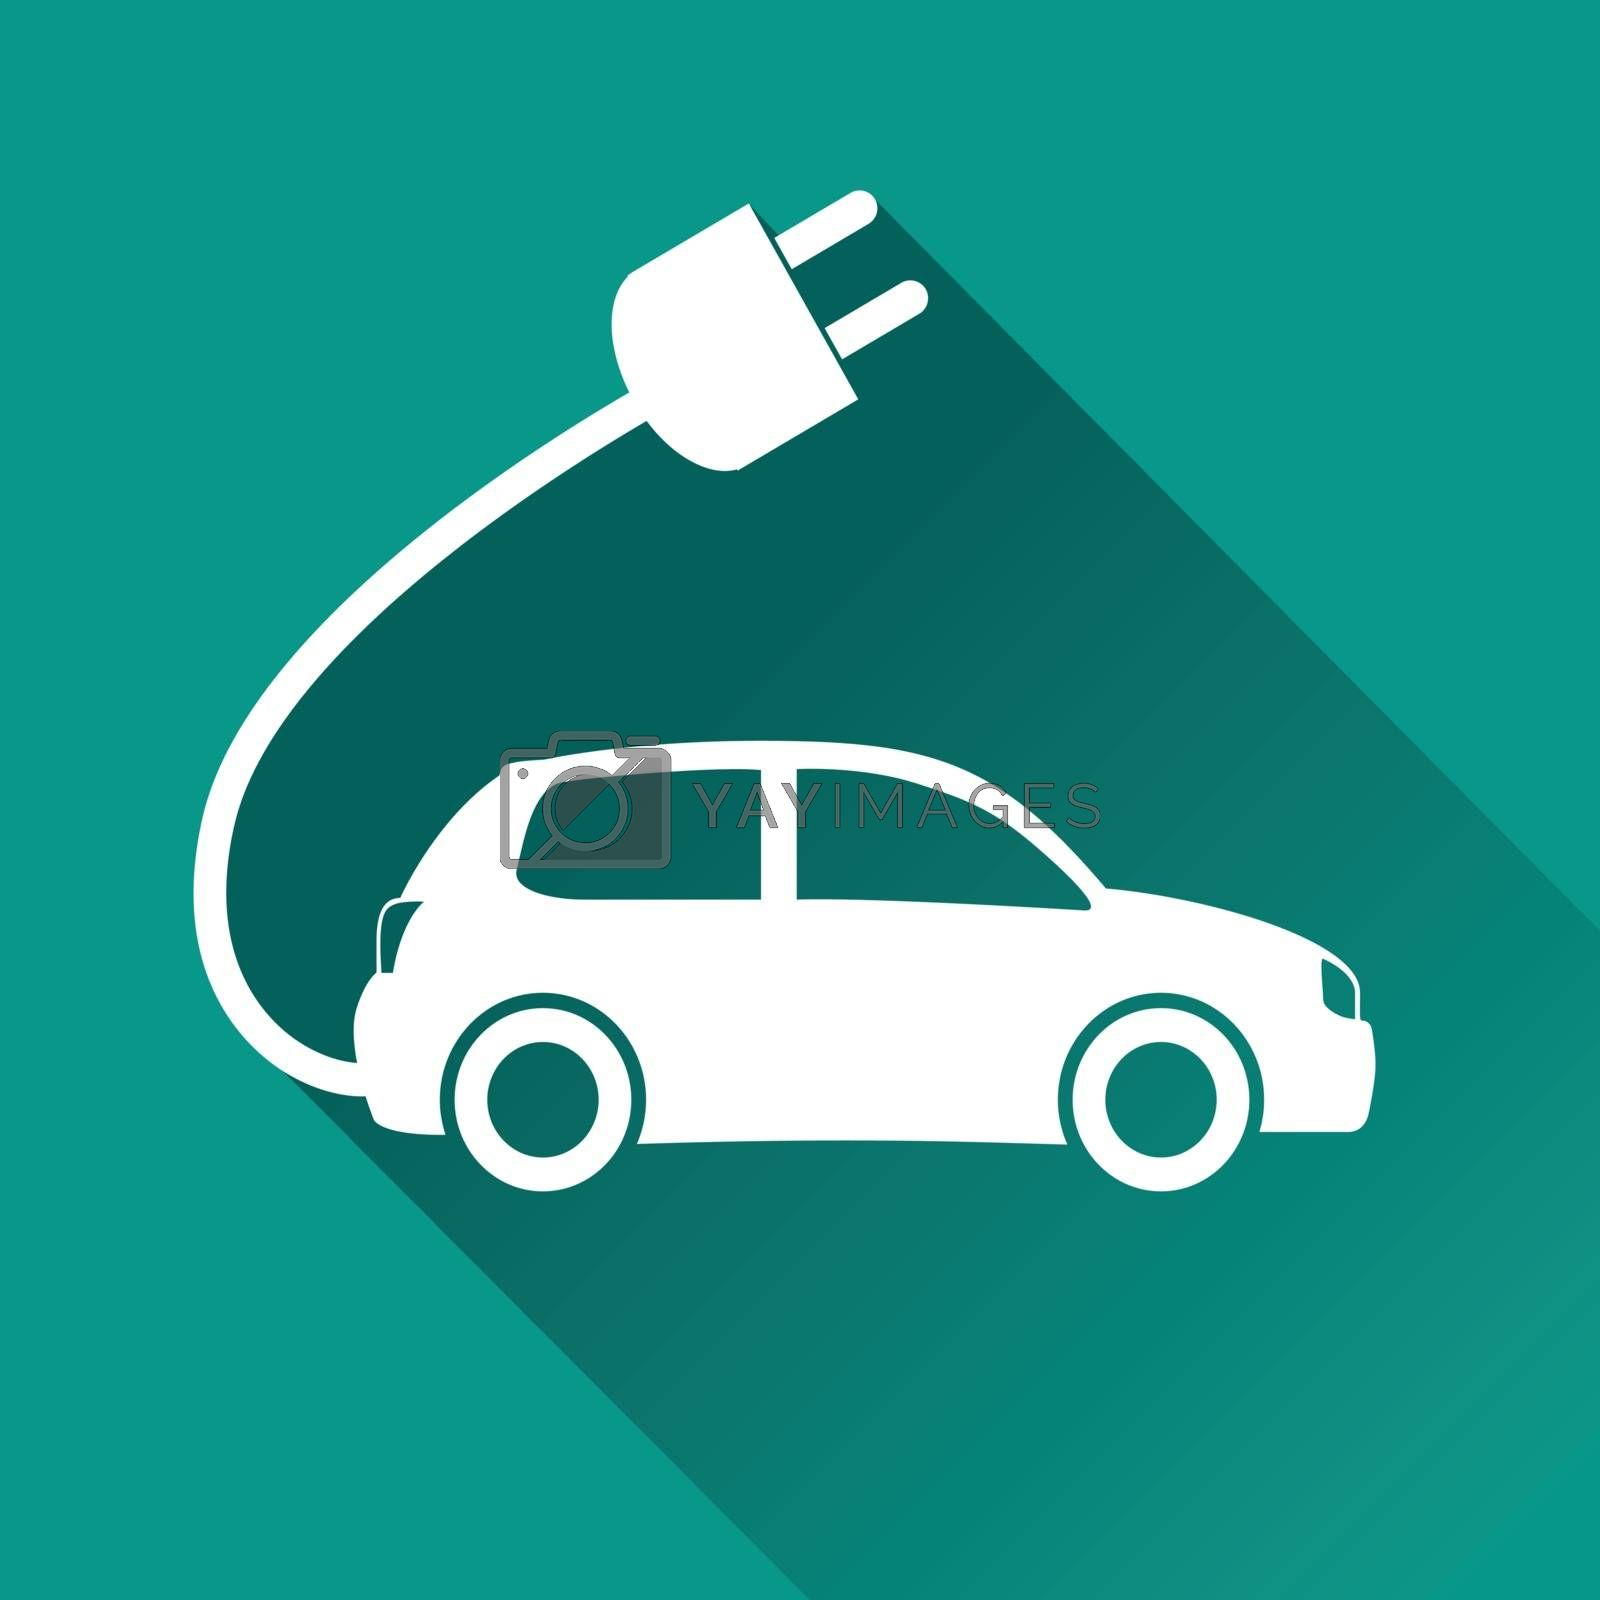 Royalty free image of electric car flat design icon by nickylarson974